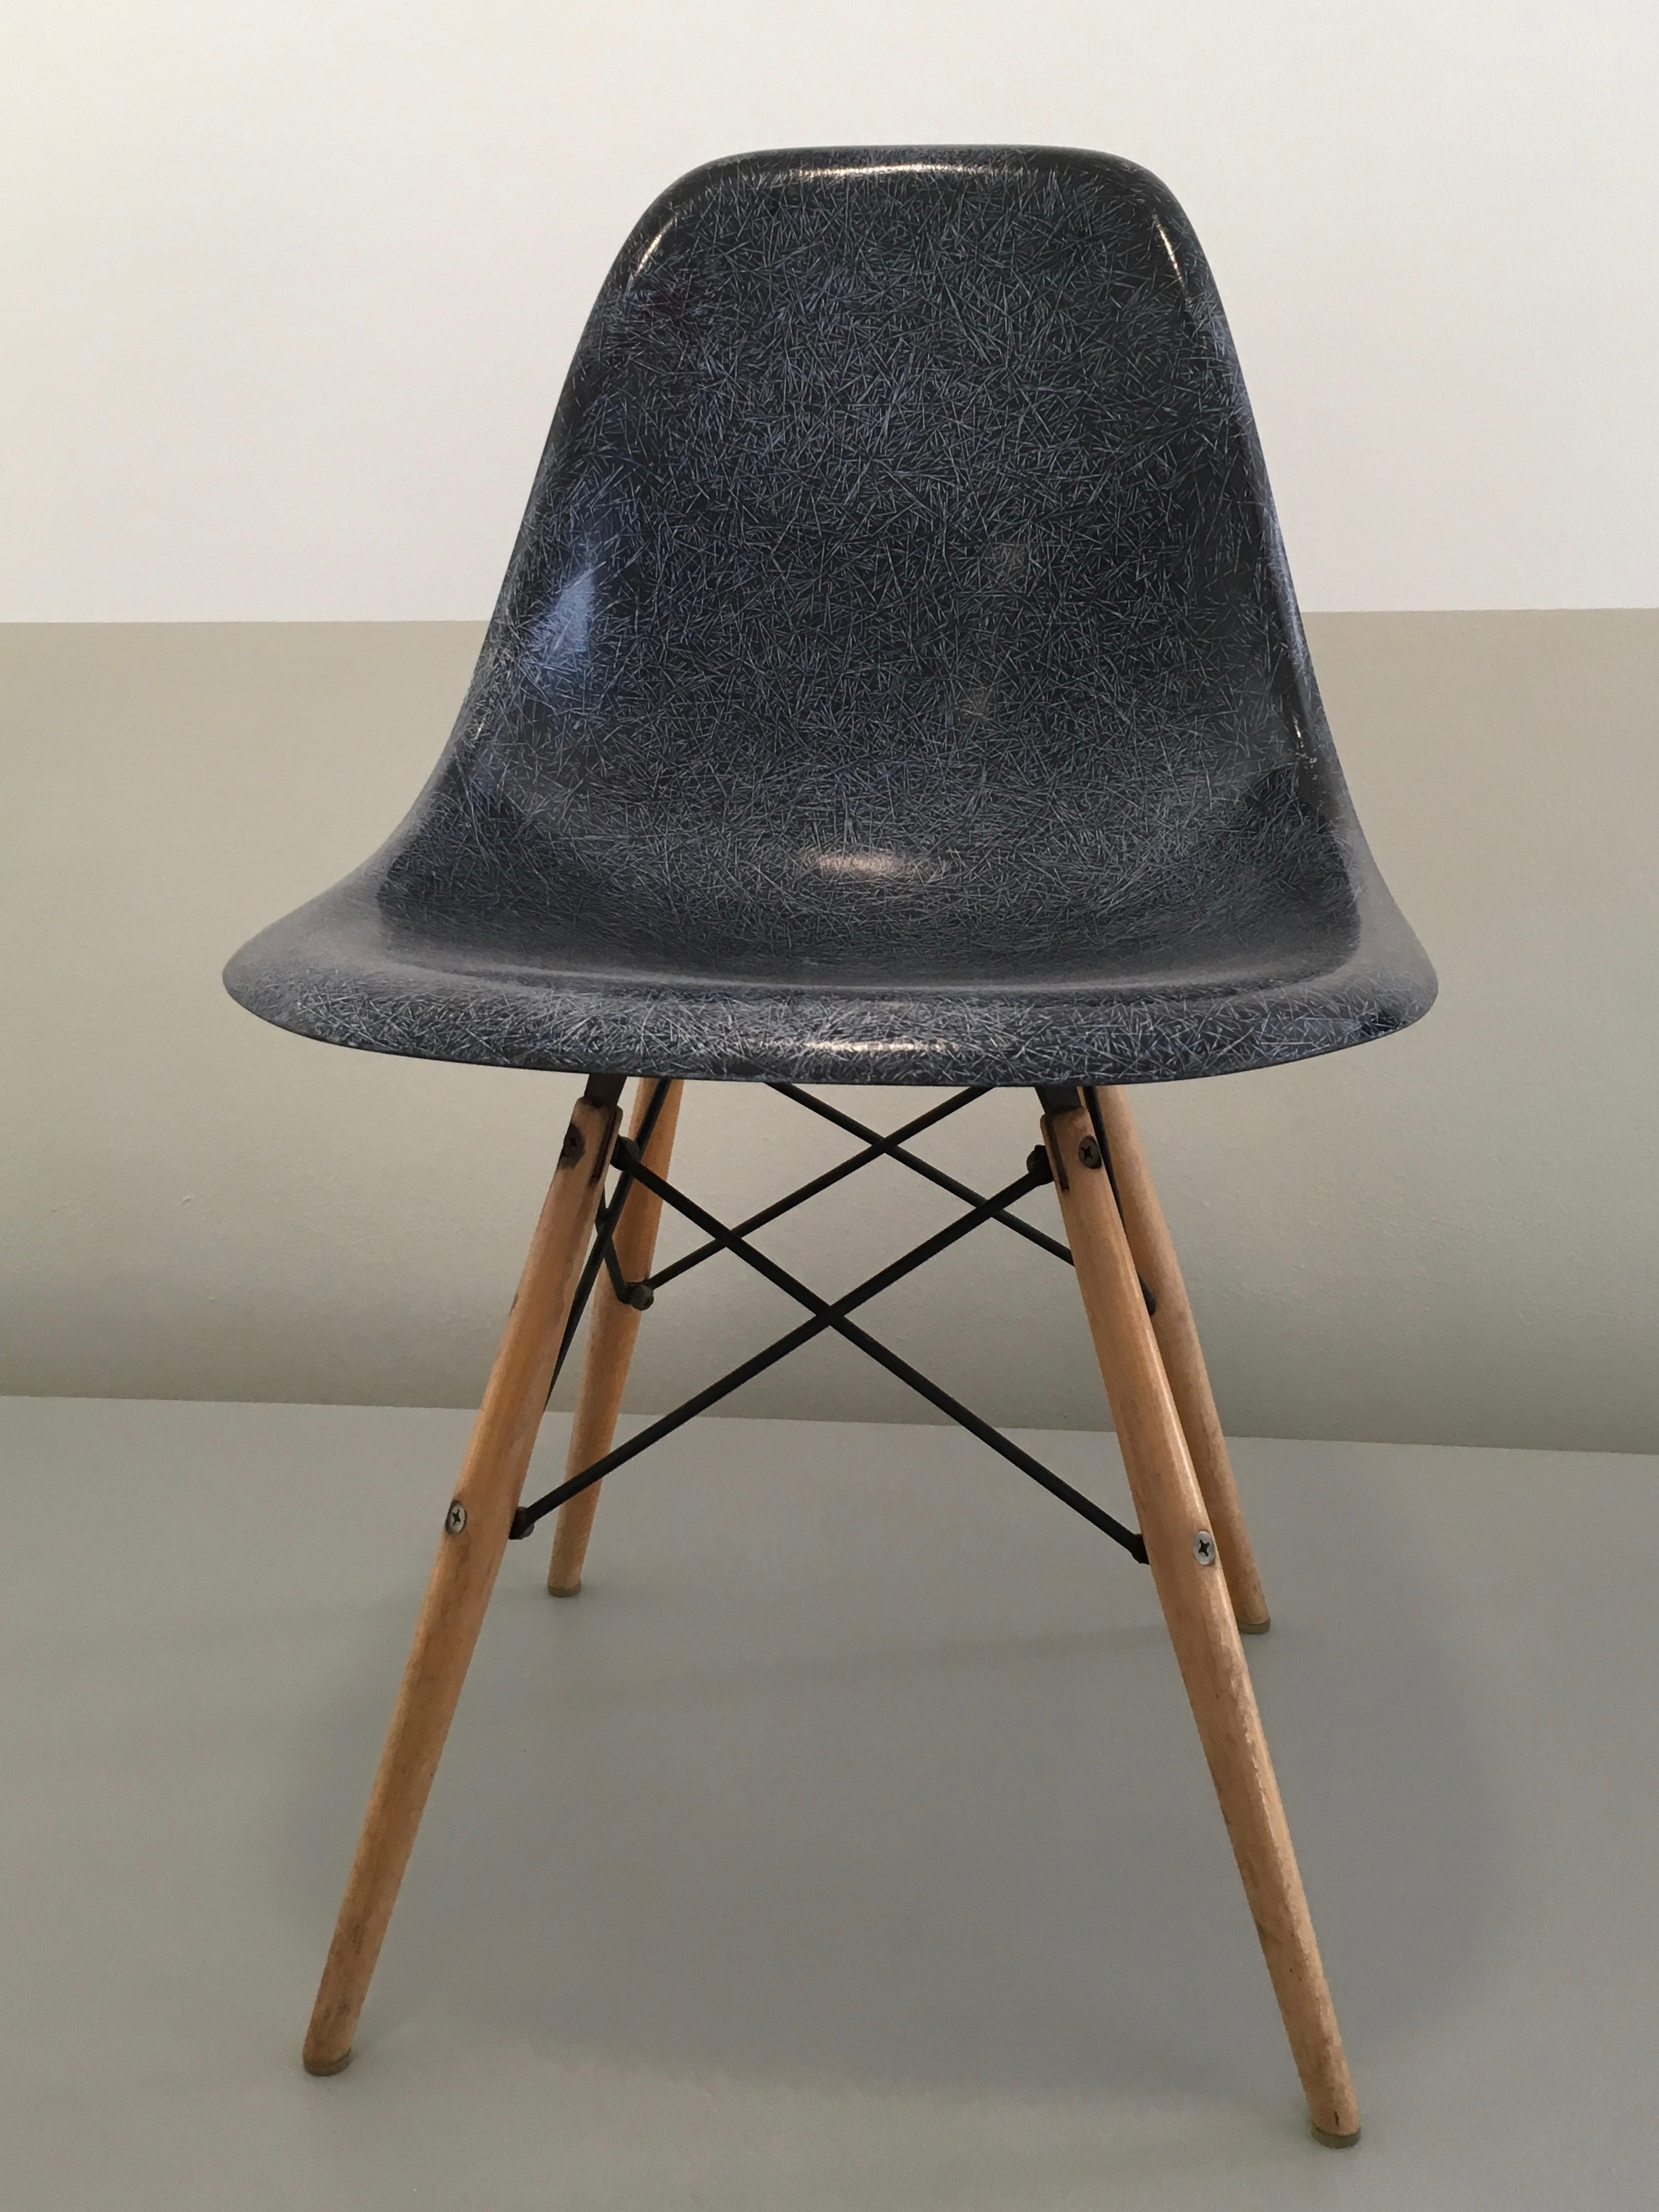 File:Charles And Ray Eames   Bucket Chair   1950 1953   Boijmans V